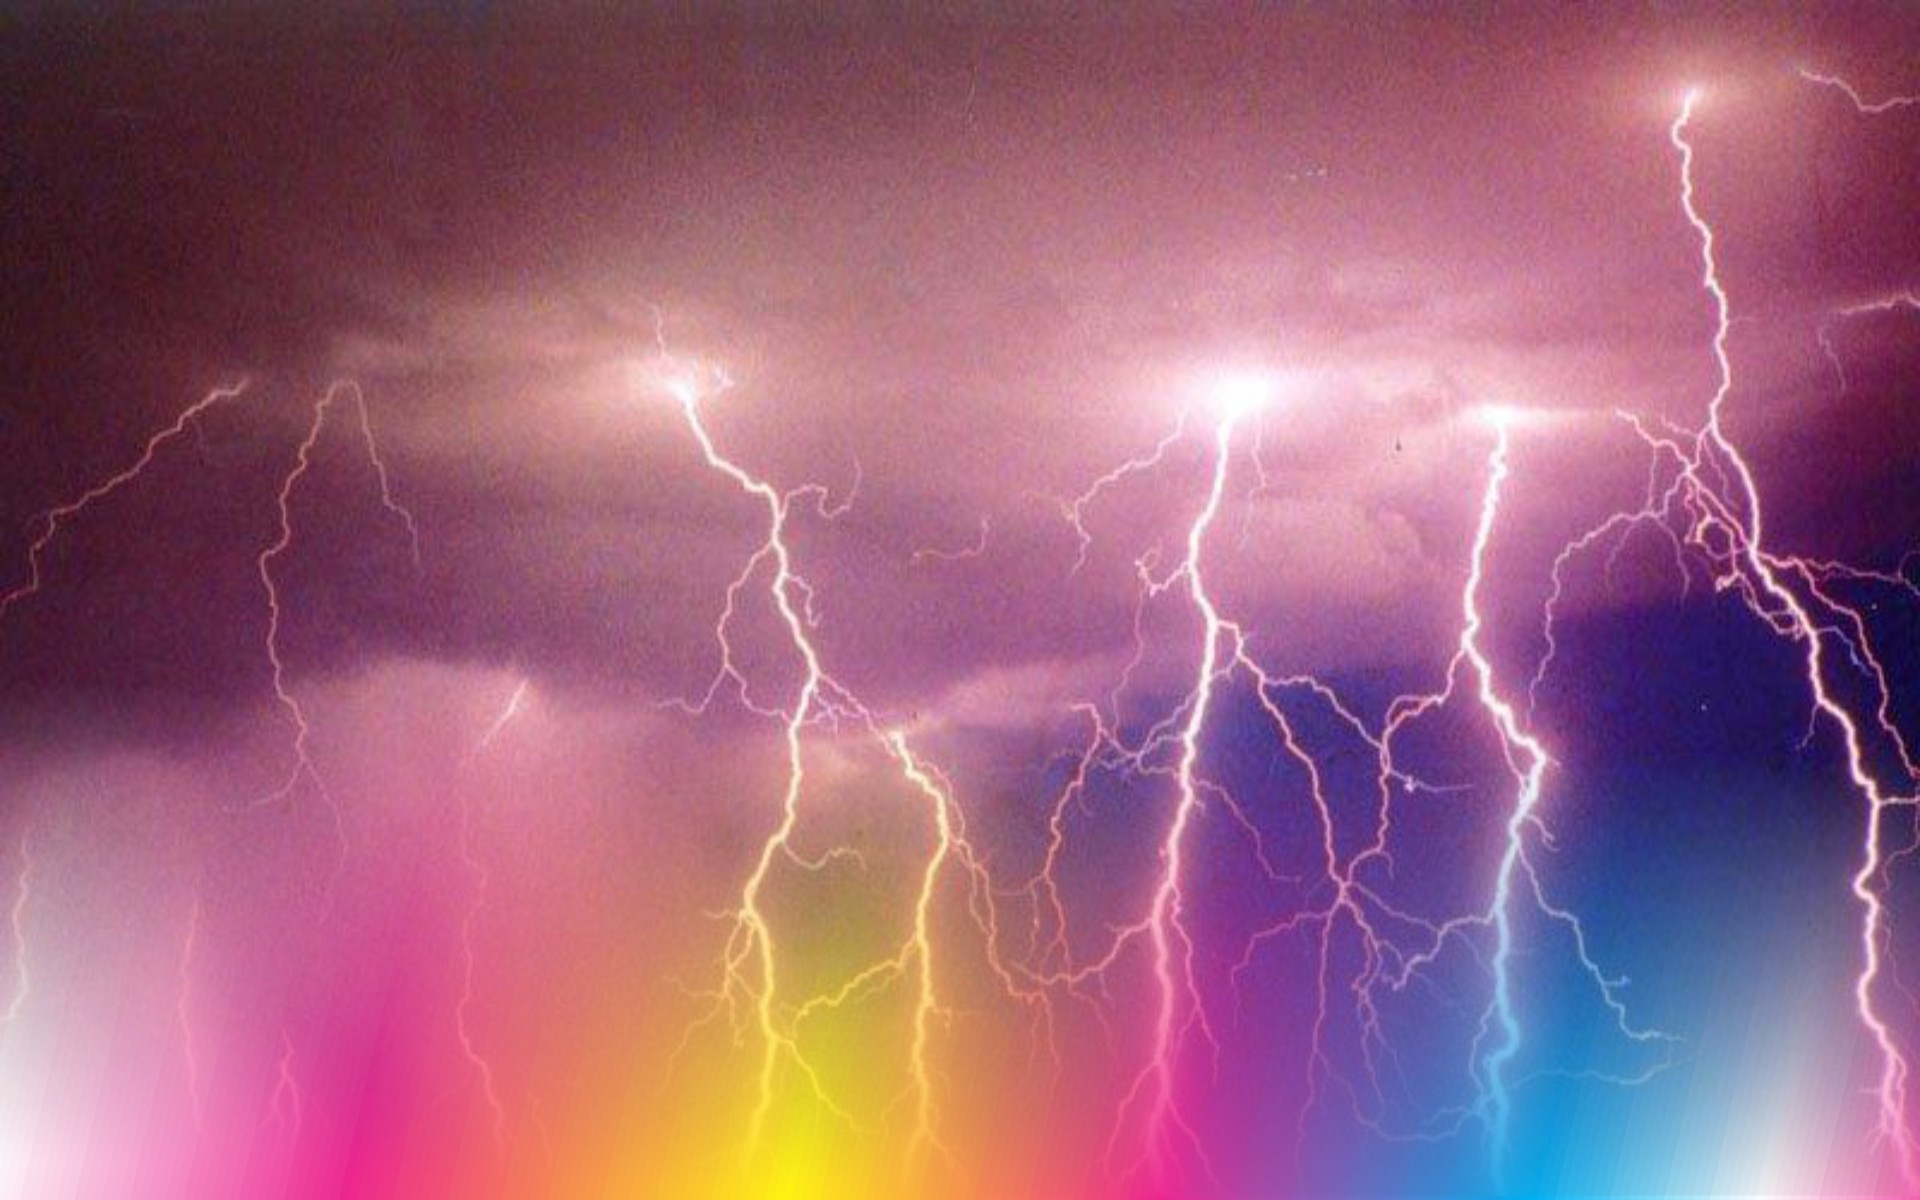 1920x1080 Thunder Tag - Nature Thunder Sky Storm Night Flash Lightning Wallpapers Hd Free for HD 16